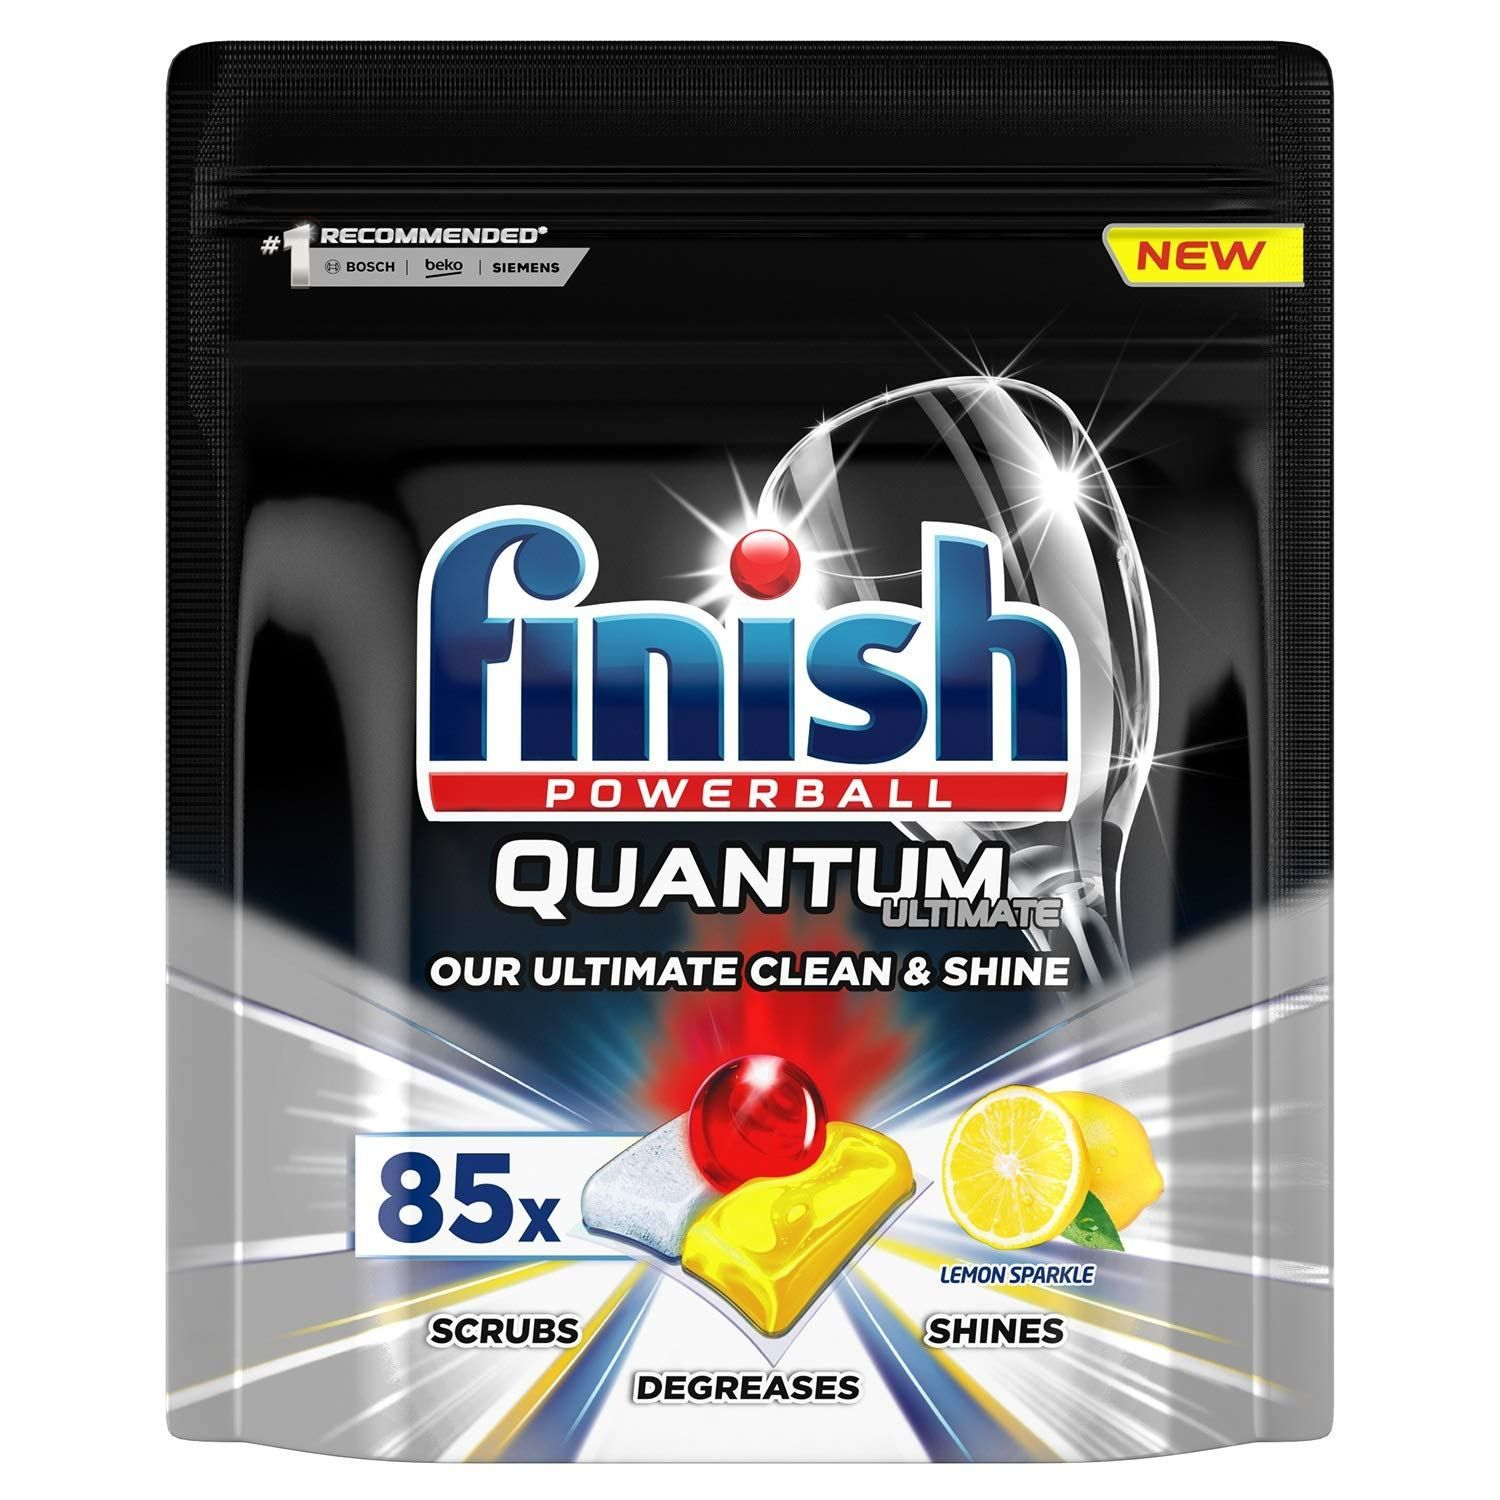 Finish Quantum Ultimate Dishwasher Tablets Lemon 85 Tabs 5 Out Of 5 Stars Via 1 View S Price Dishwasher Tablets Dishwasher Detergent Biodegradable Products